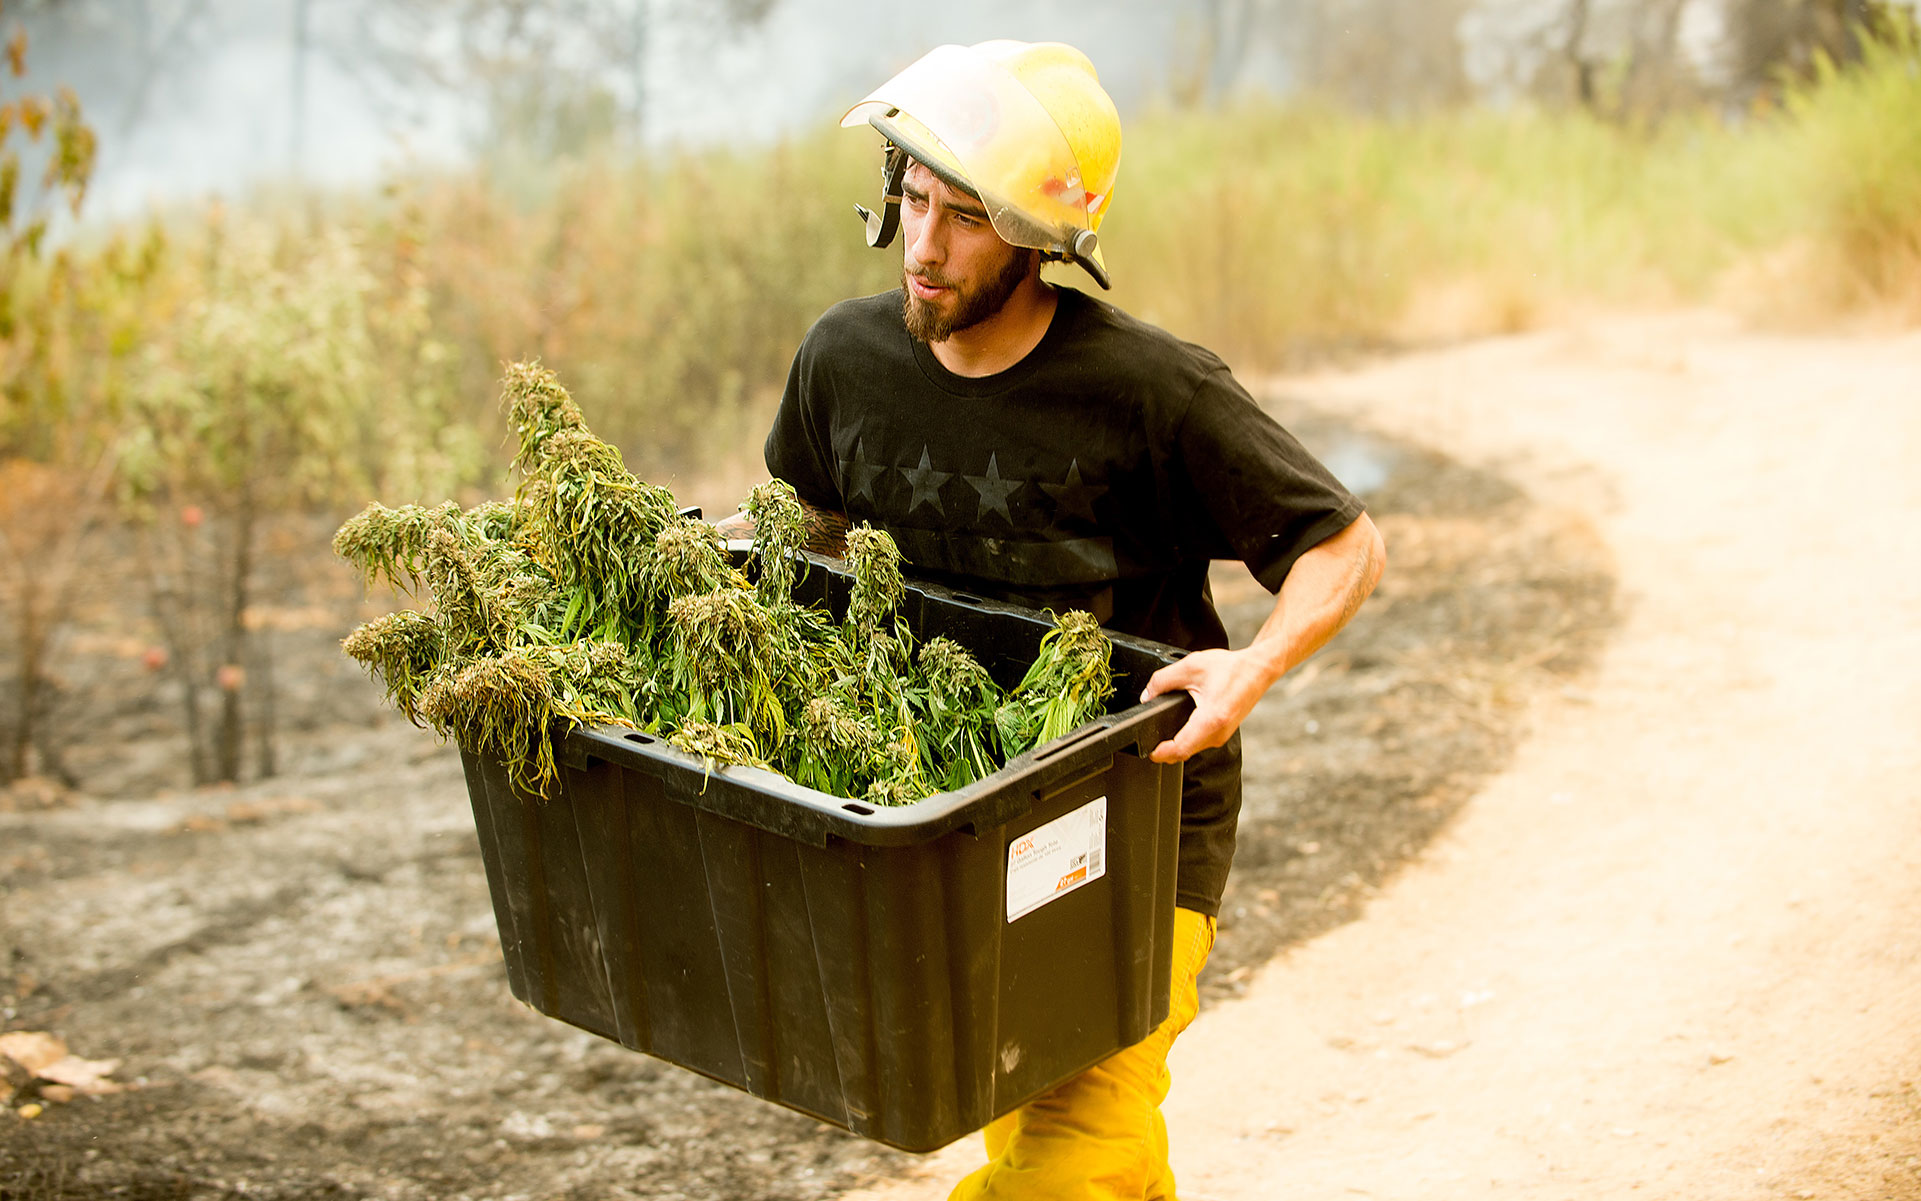 image: cannabis farmer saves crop from wildfires